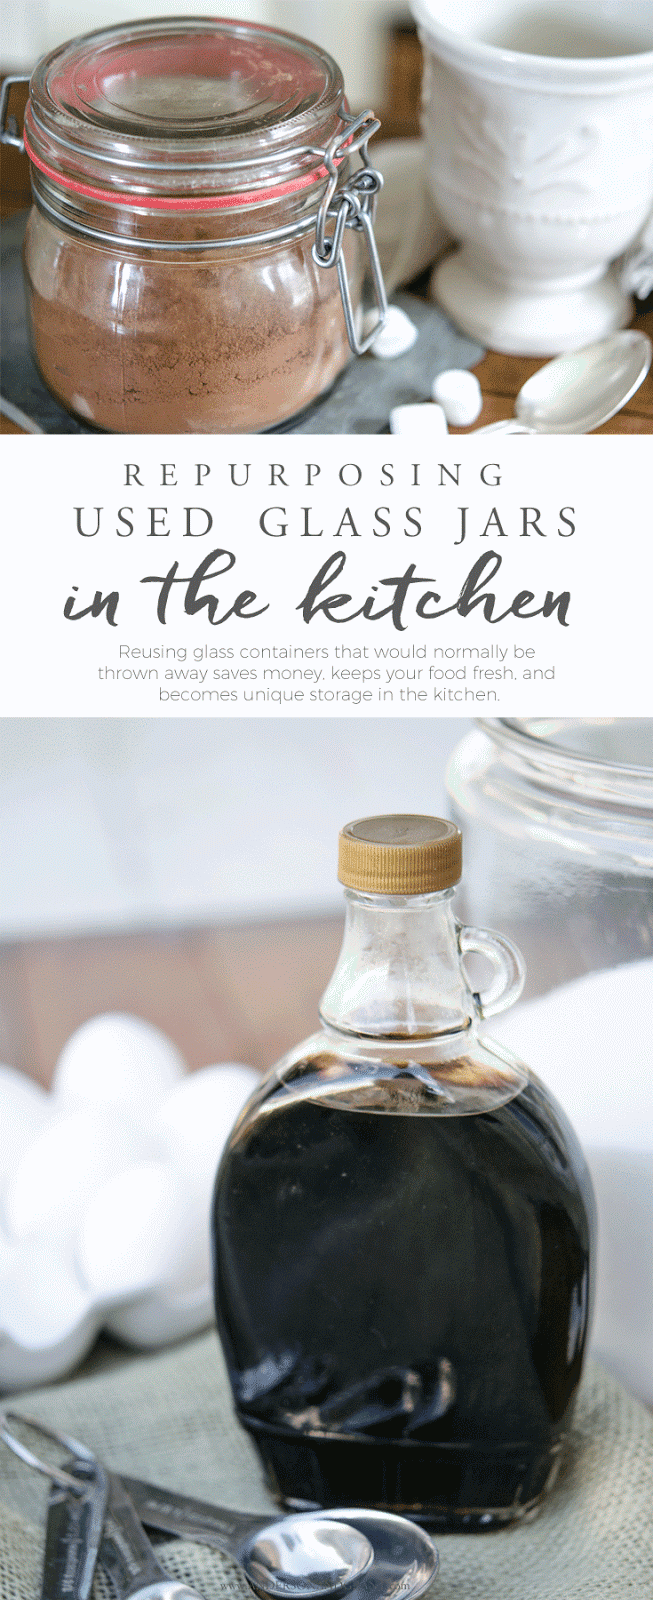 Tips for reusing glass jars and bottles as unique storage containers for food in your kitchen. #organize #storage #foodstorage #kitchen